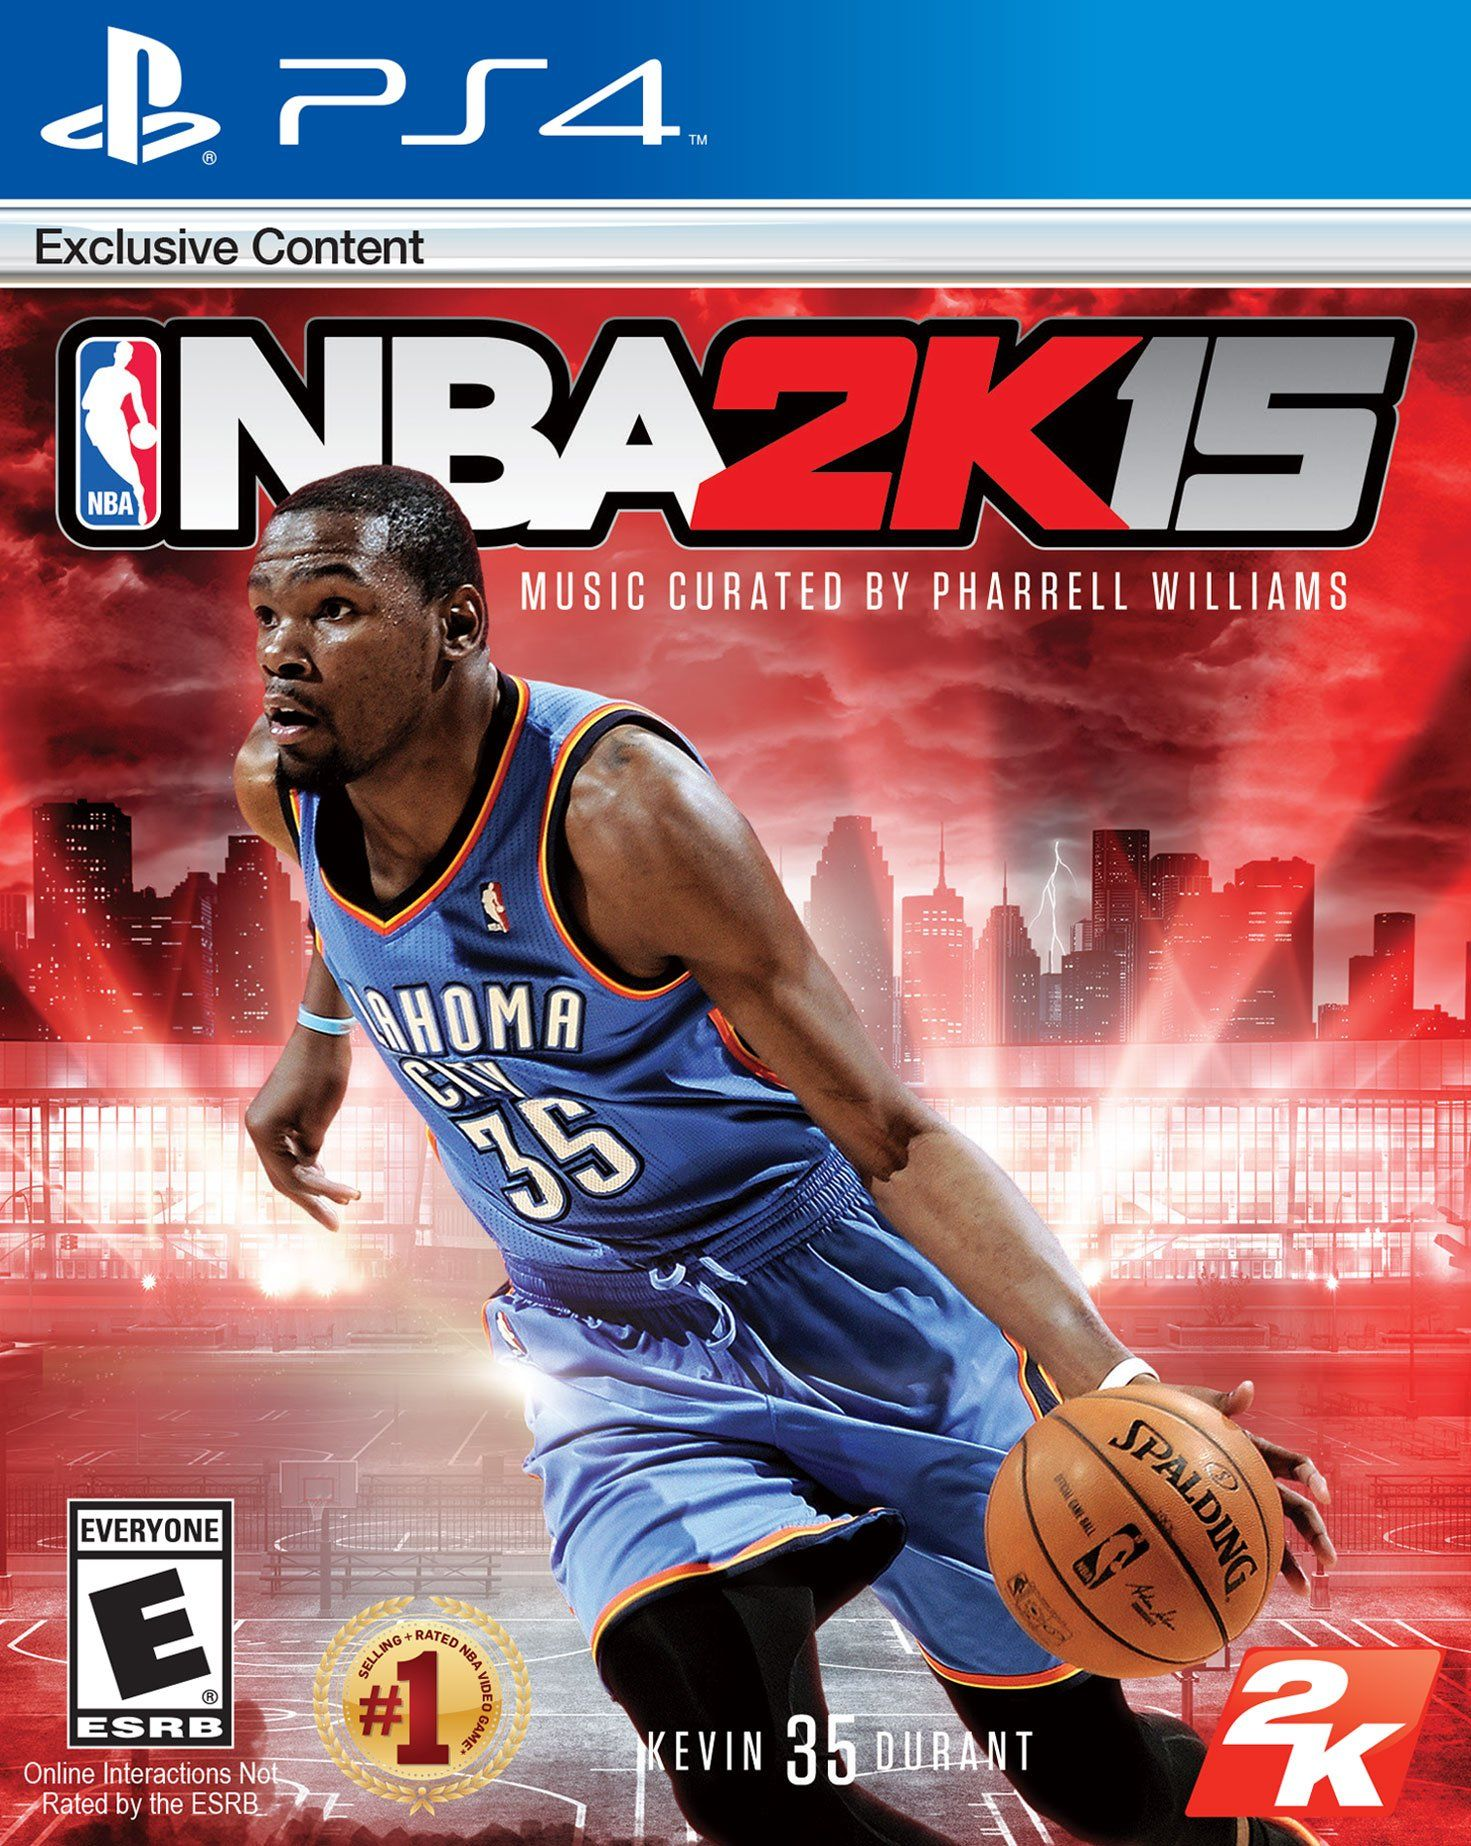 NBA 2K15 PlayStation 4 (With images) Nba, Xbox one